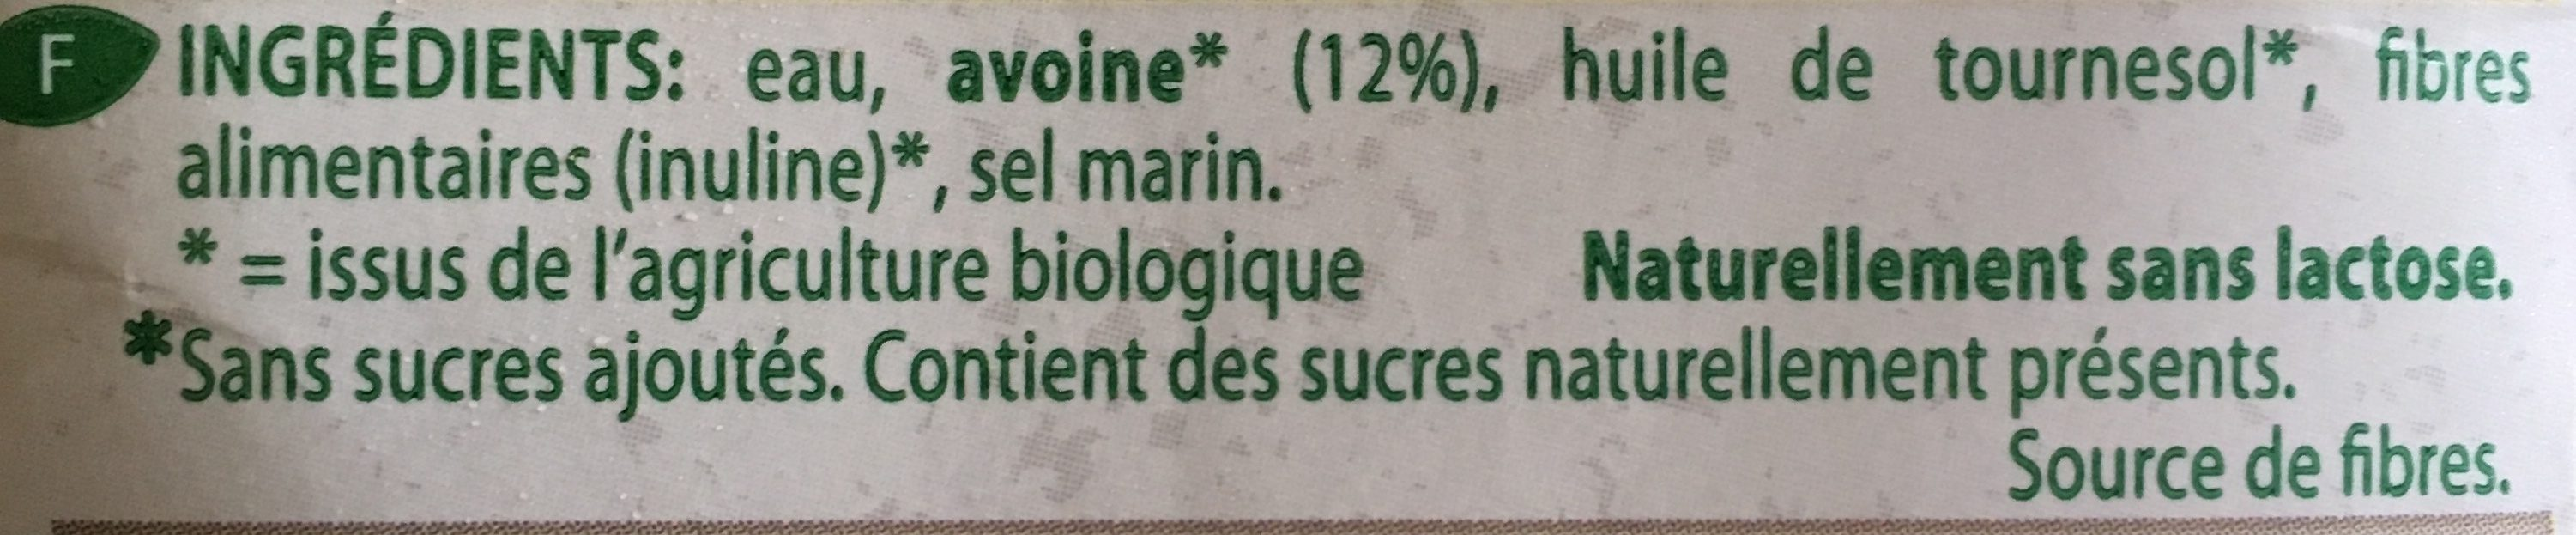 Organic-bio hafer - Ingredients - fr